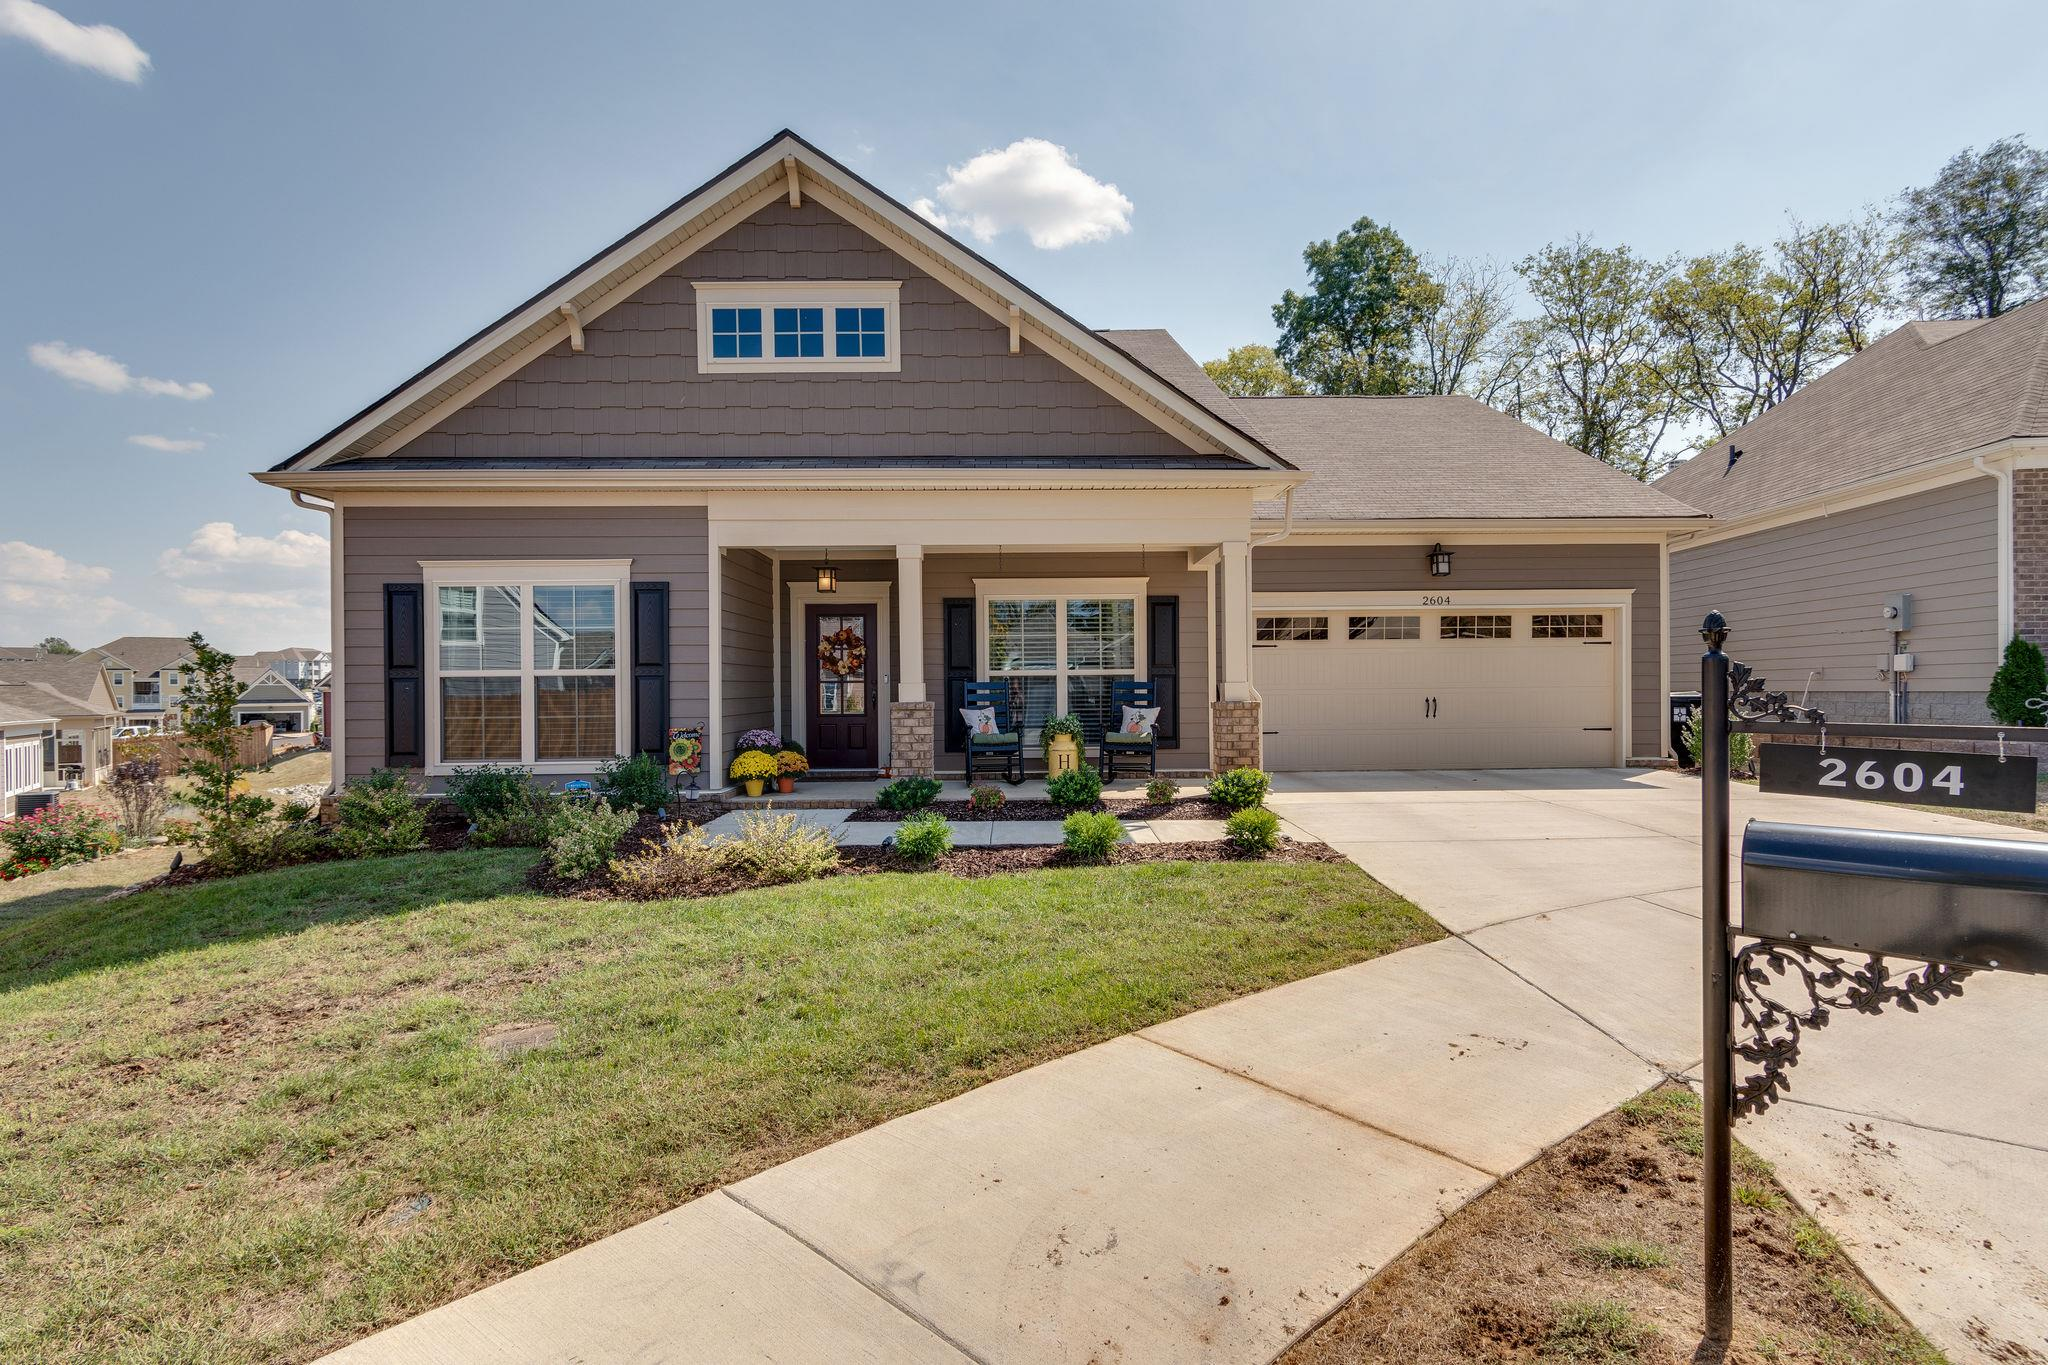 2604 Conti Dr, Columbia, Tennessee